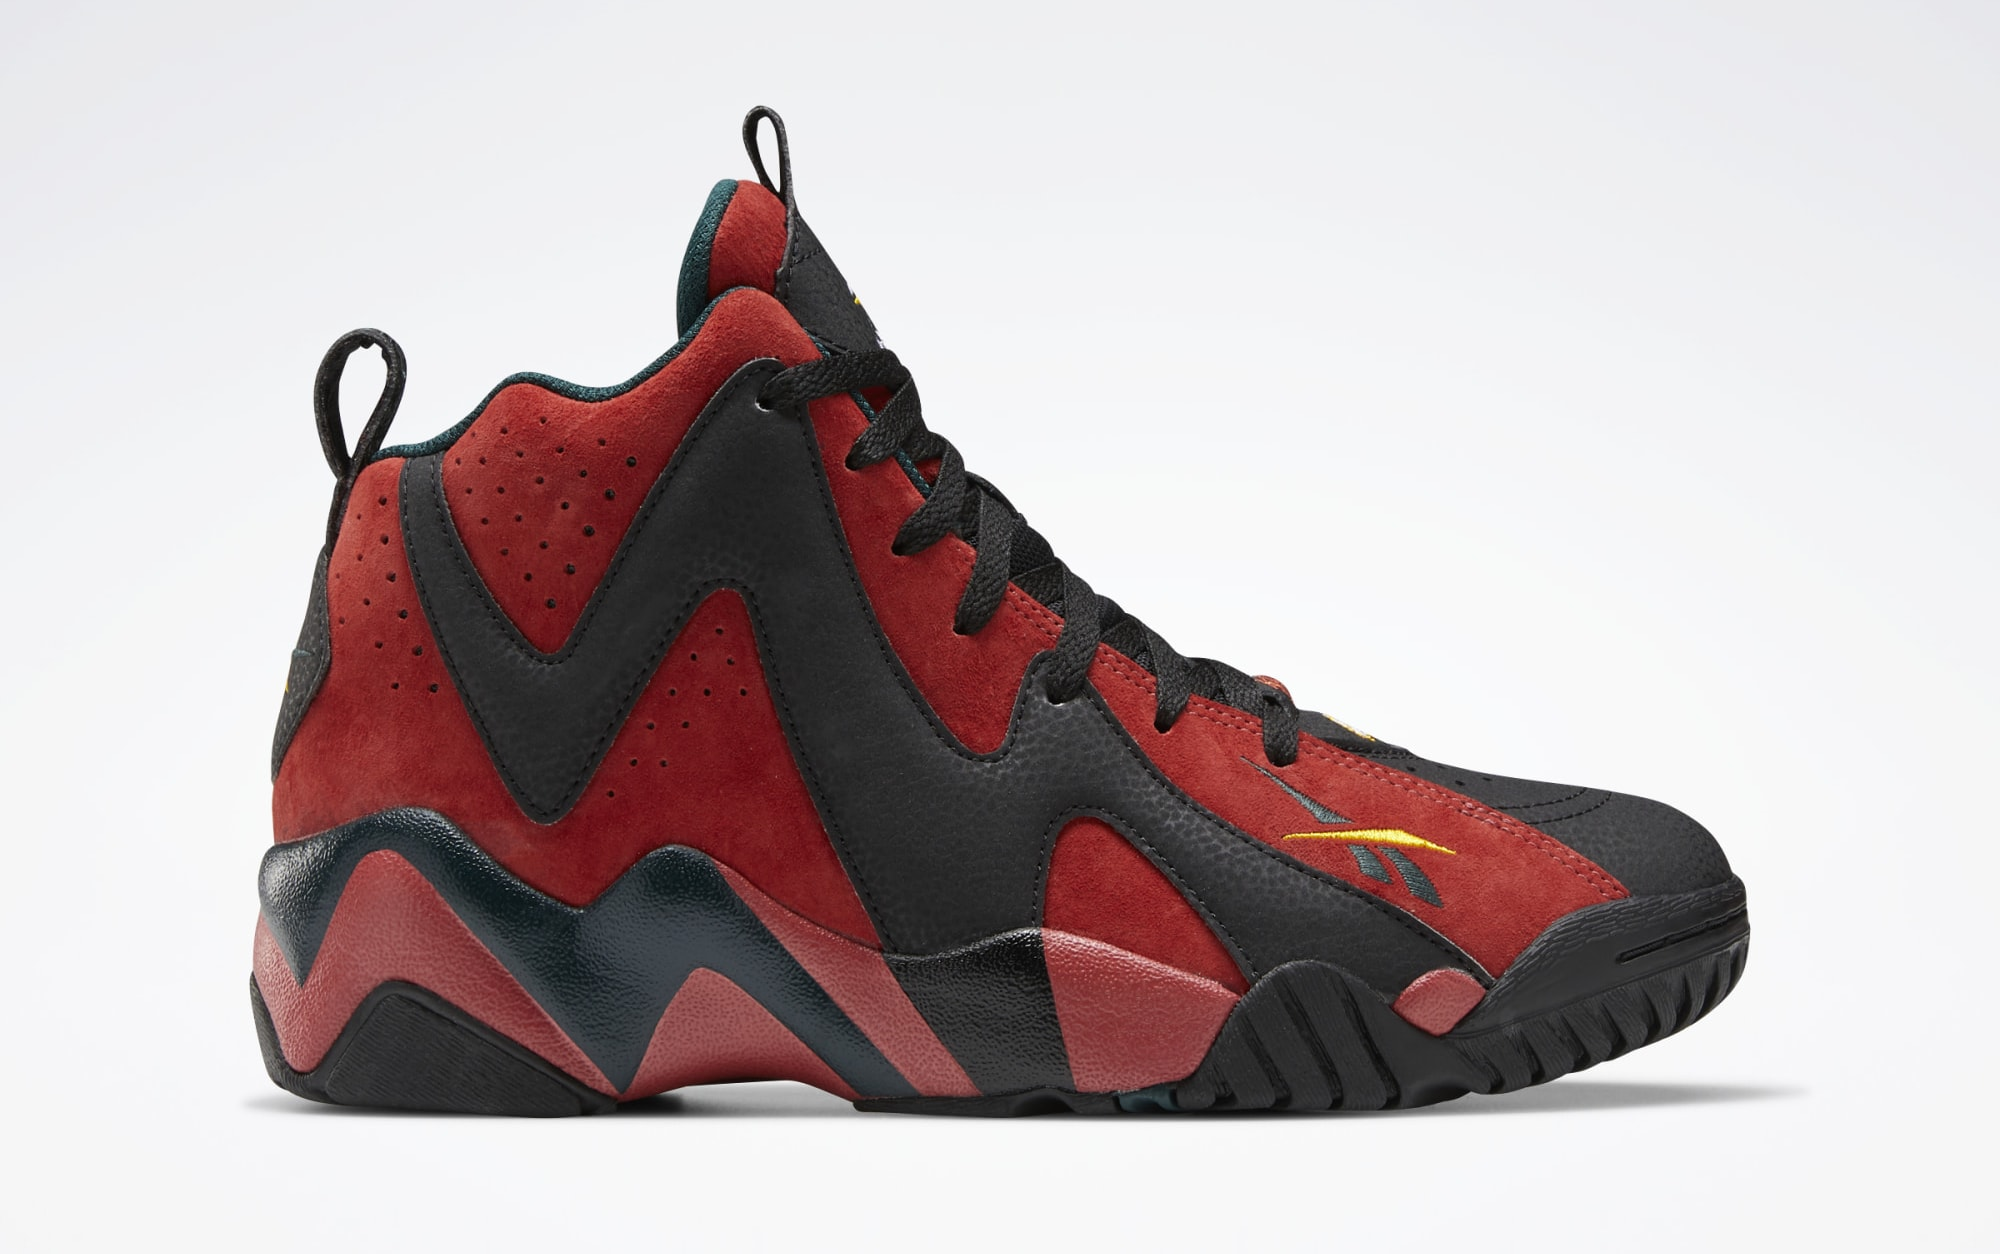 Reebok Kamikaze 2 'Alternates' FZ4006 Lateral